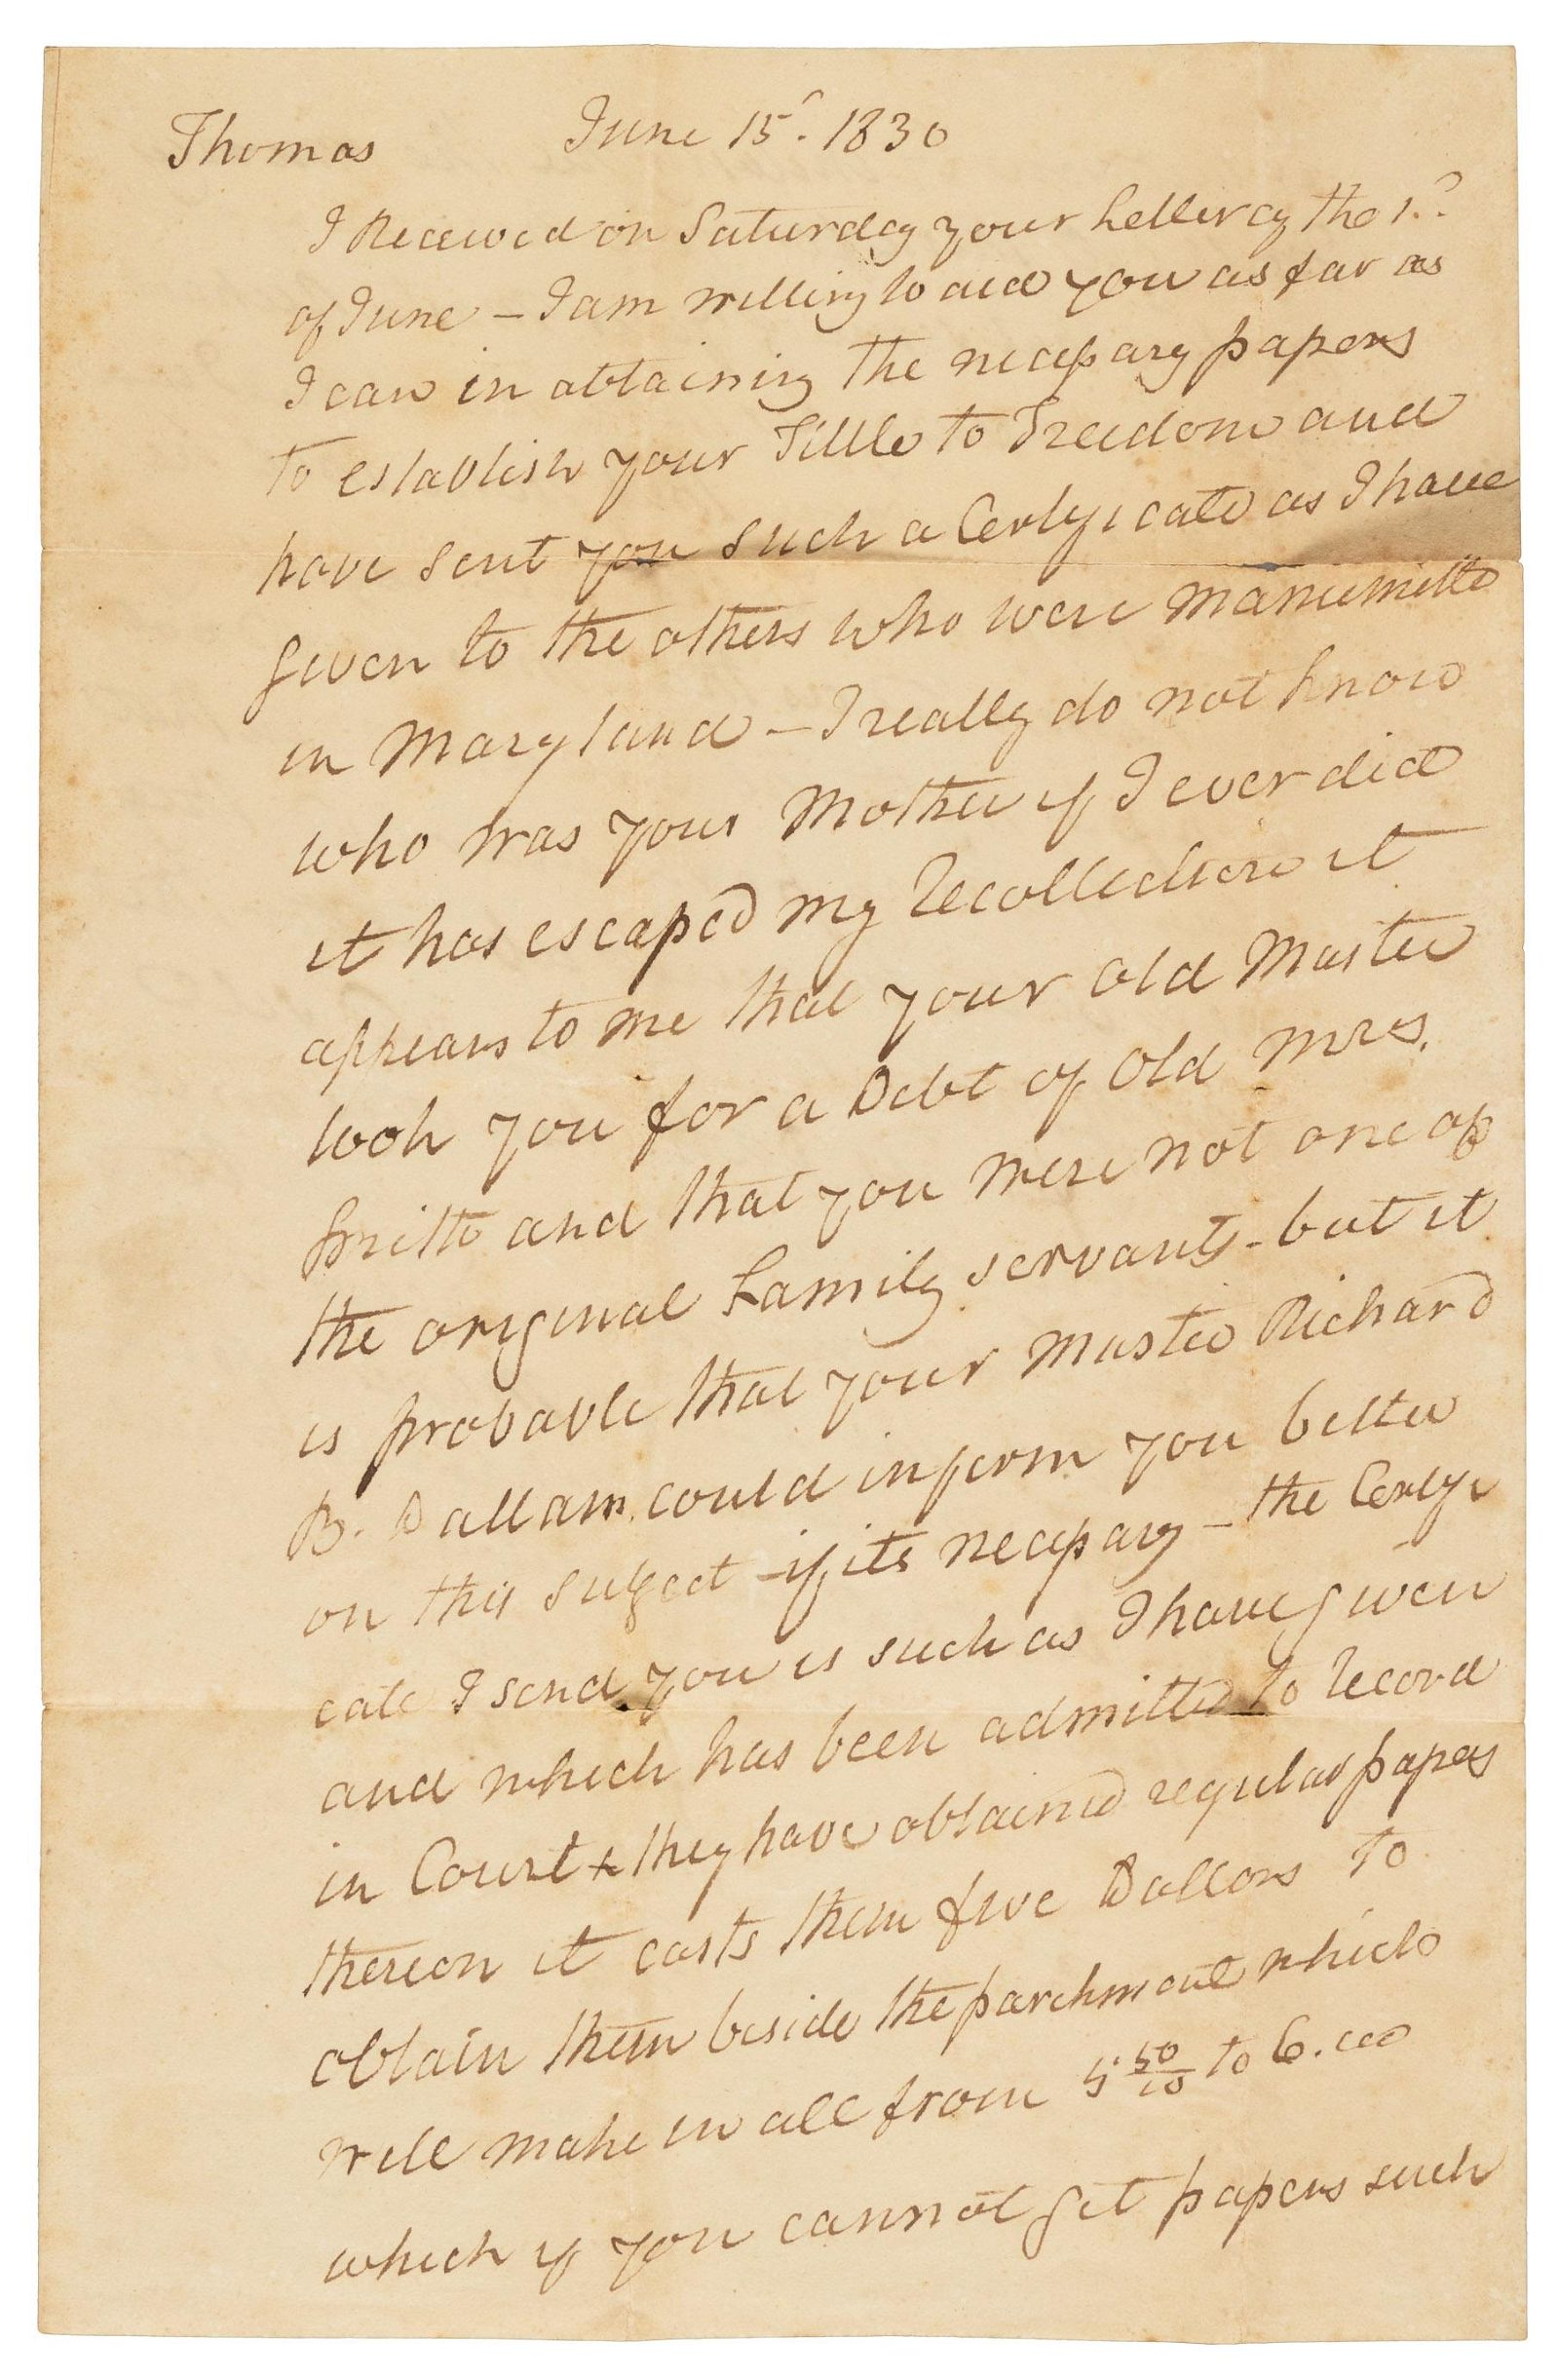 1830 Letter, Kentucky grandee to ex-slave